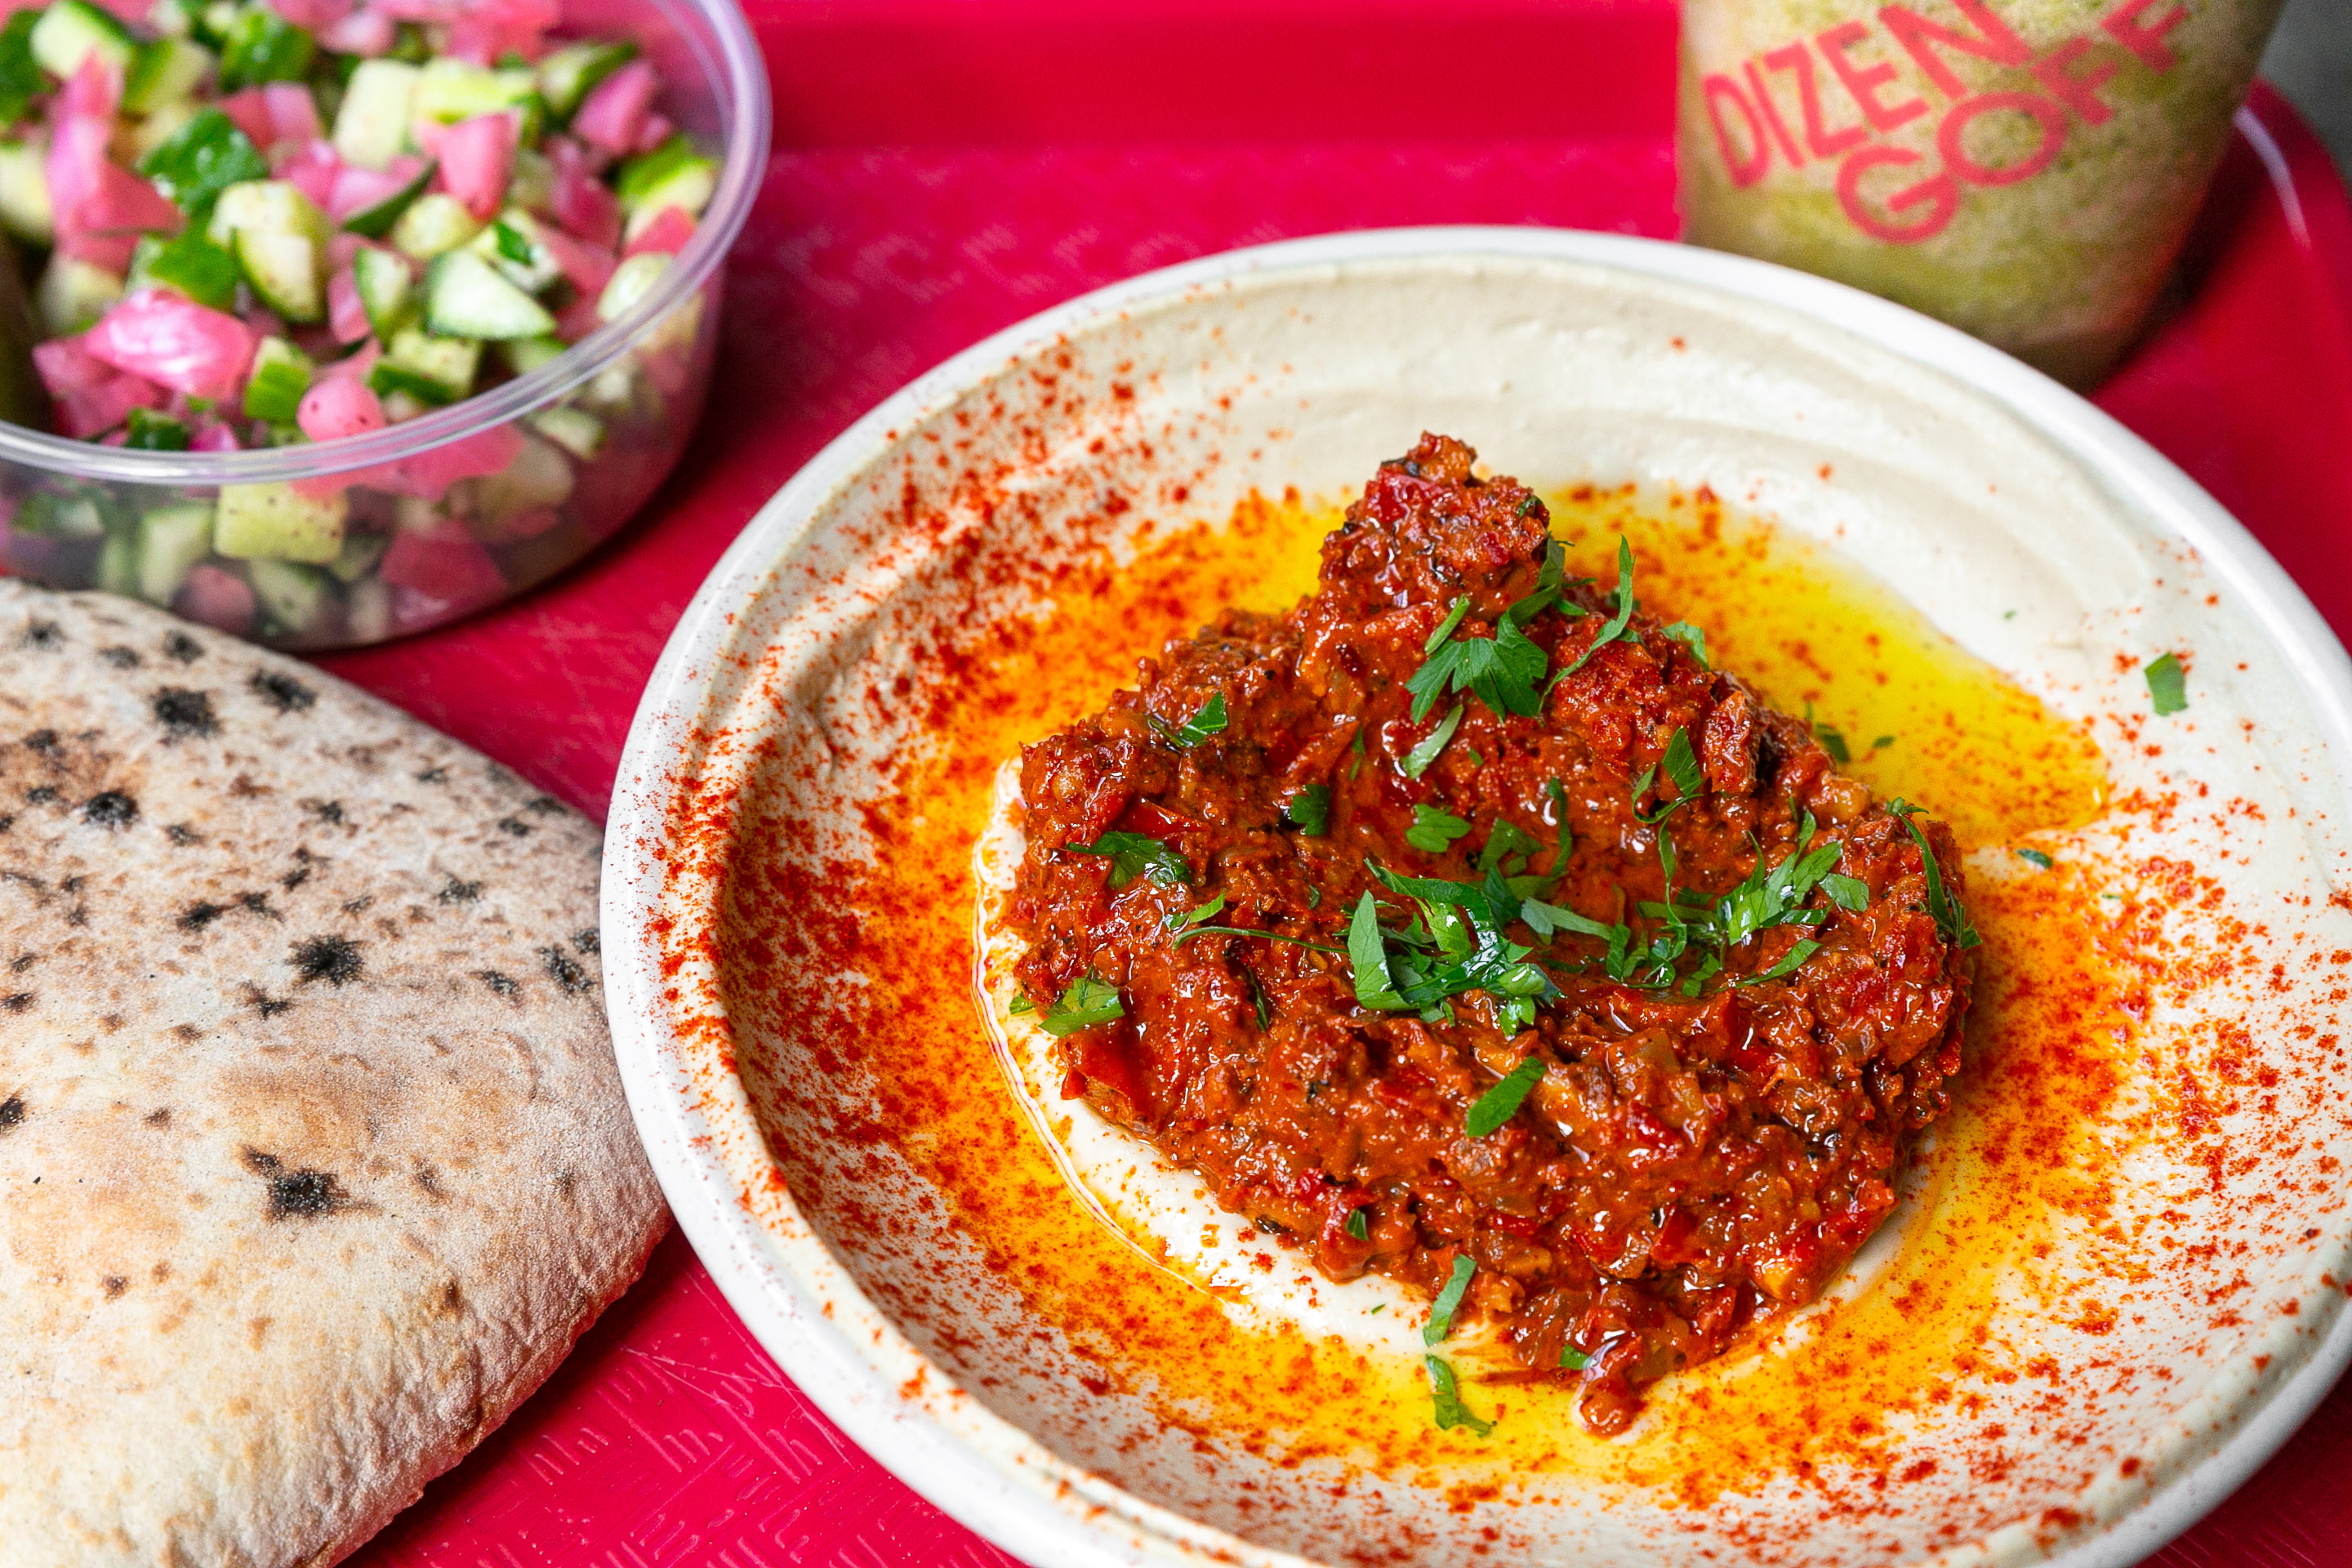 Hummus with roasted red peppers